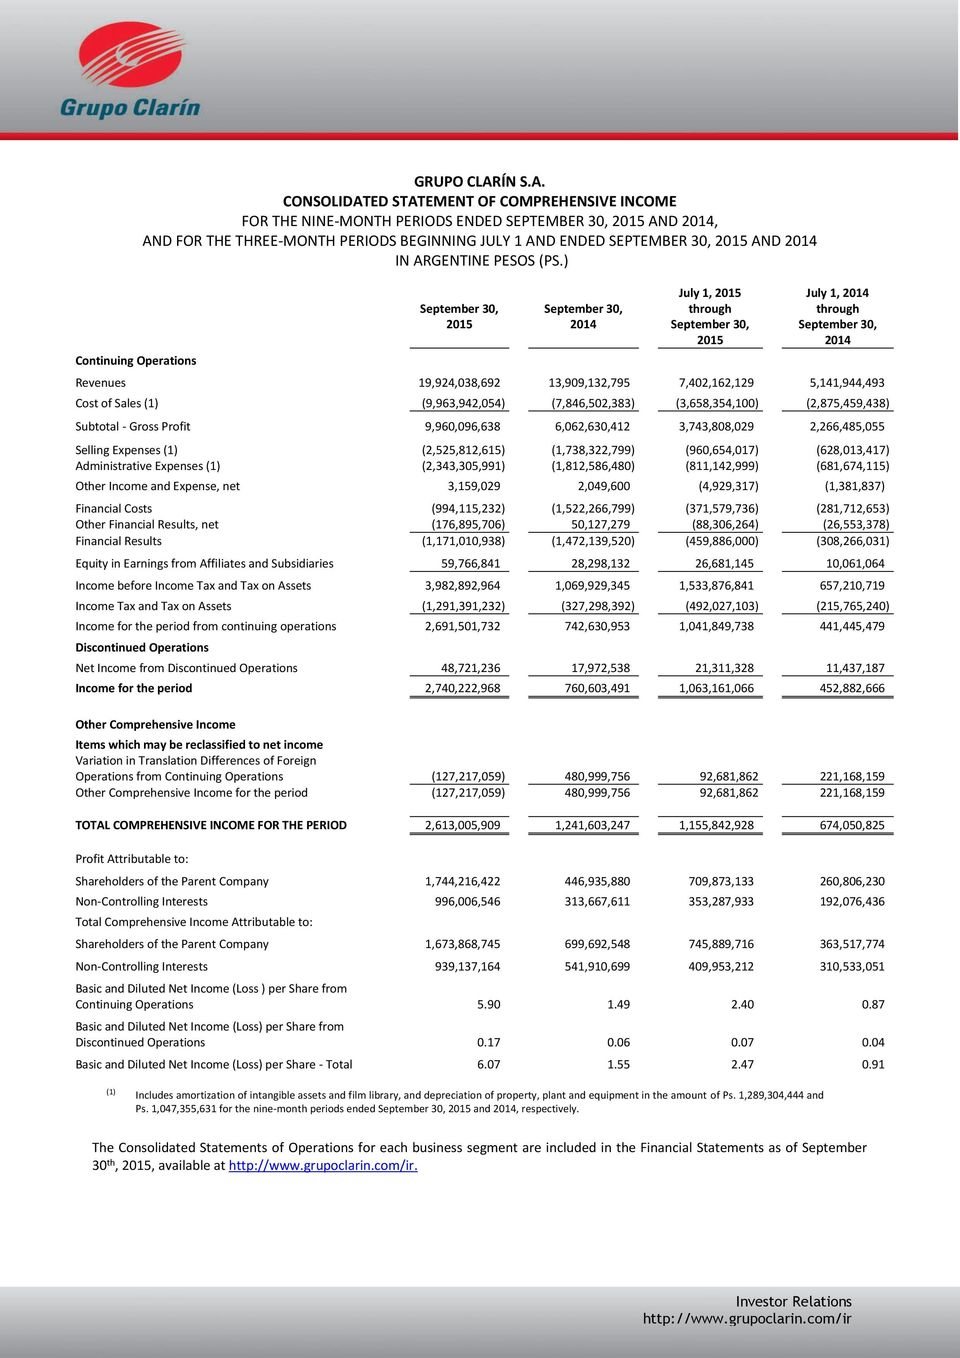 CONSOLIDATED STATEMENT OF COMPREHENSIVE INCOME FOR THE NINE-MONTH PERIODS ENDED SEPTEMBER 30, AND 2014, AND FOR THE THREE-MONTH PERIODS BEGINNING JULY 1 AND ENDED SEPTEMBER 30, AND 2014 IN ARGENTINE